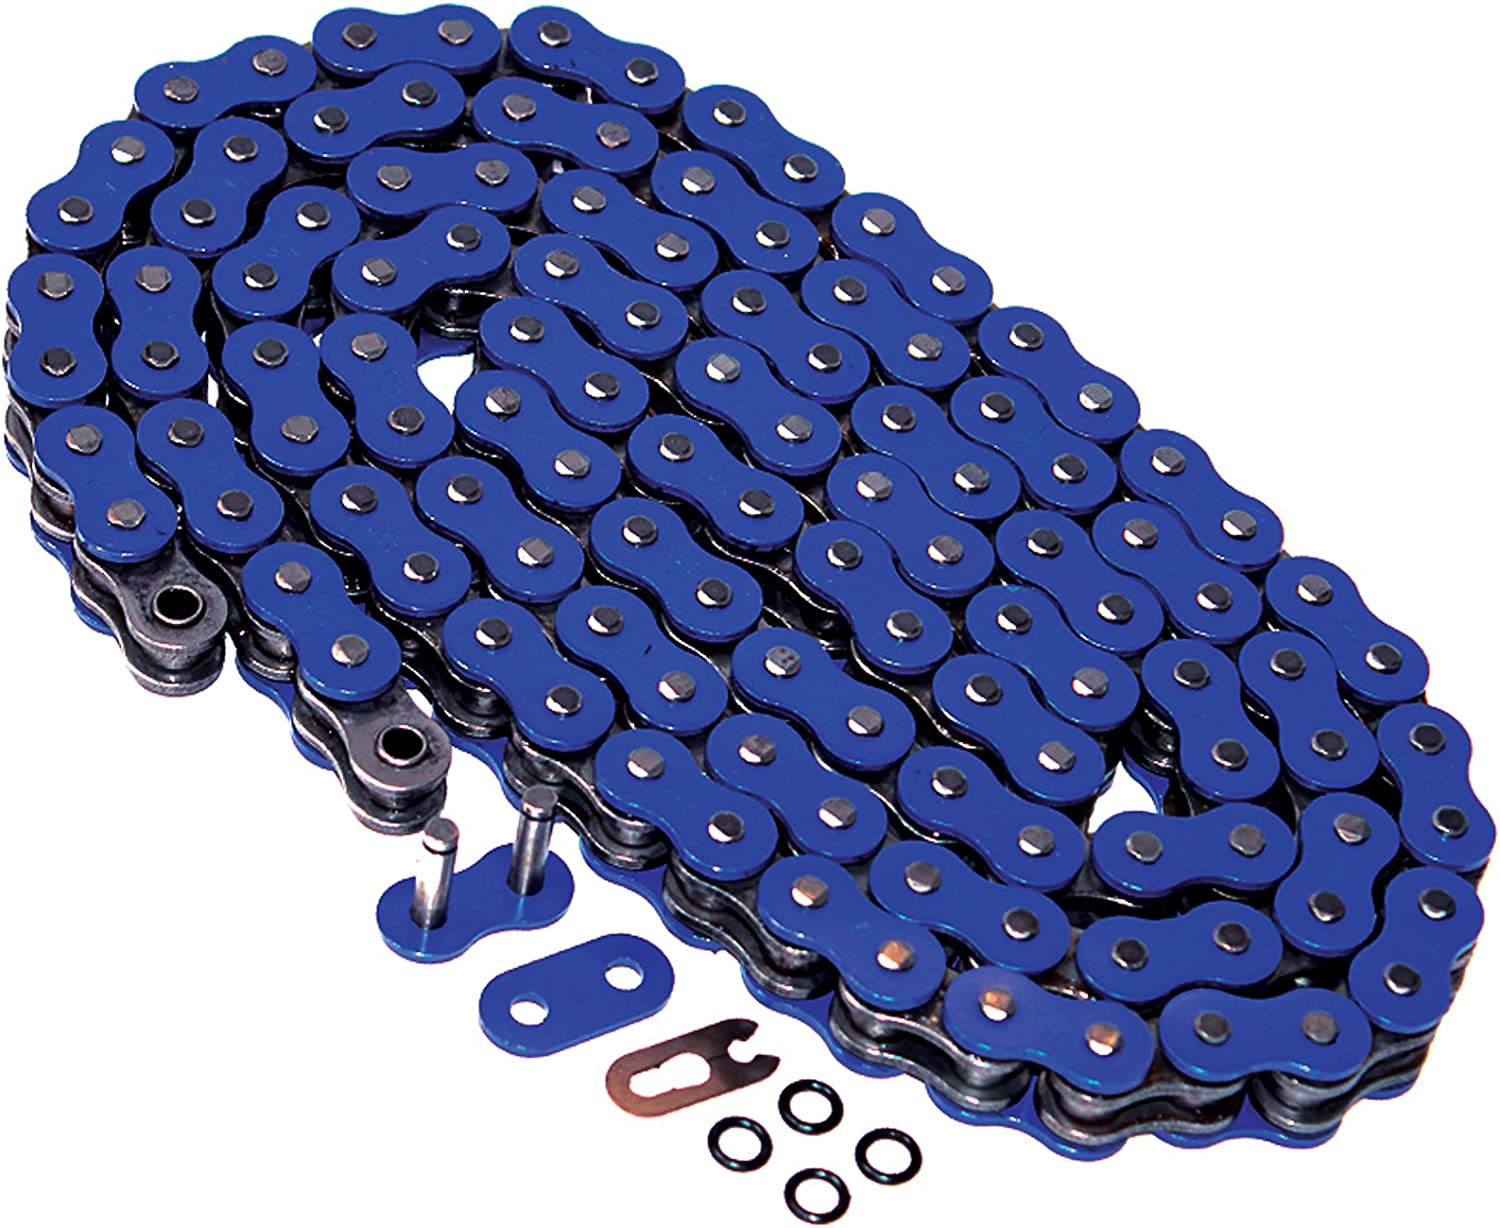 Caltric O-Ring Drive Chain Shipping included Quality inspection Compatible Y Yamaha with Yzf6 Yzf600R